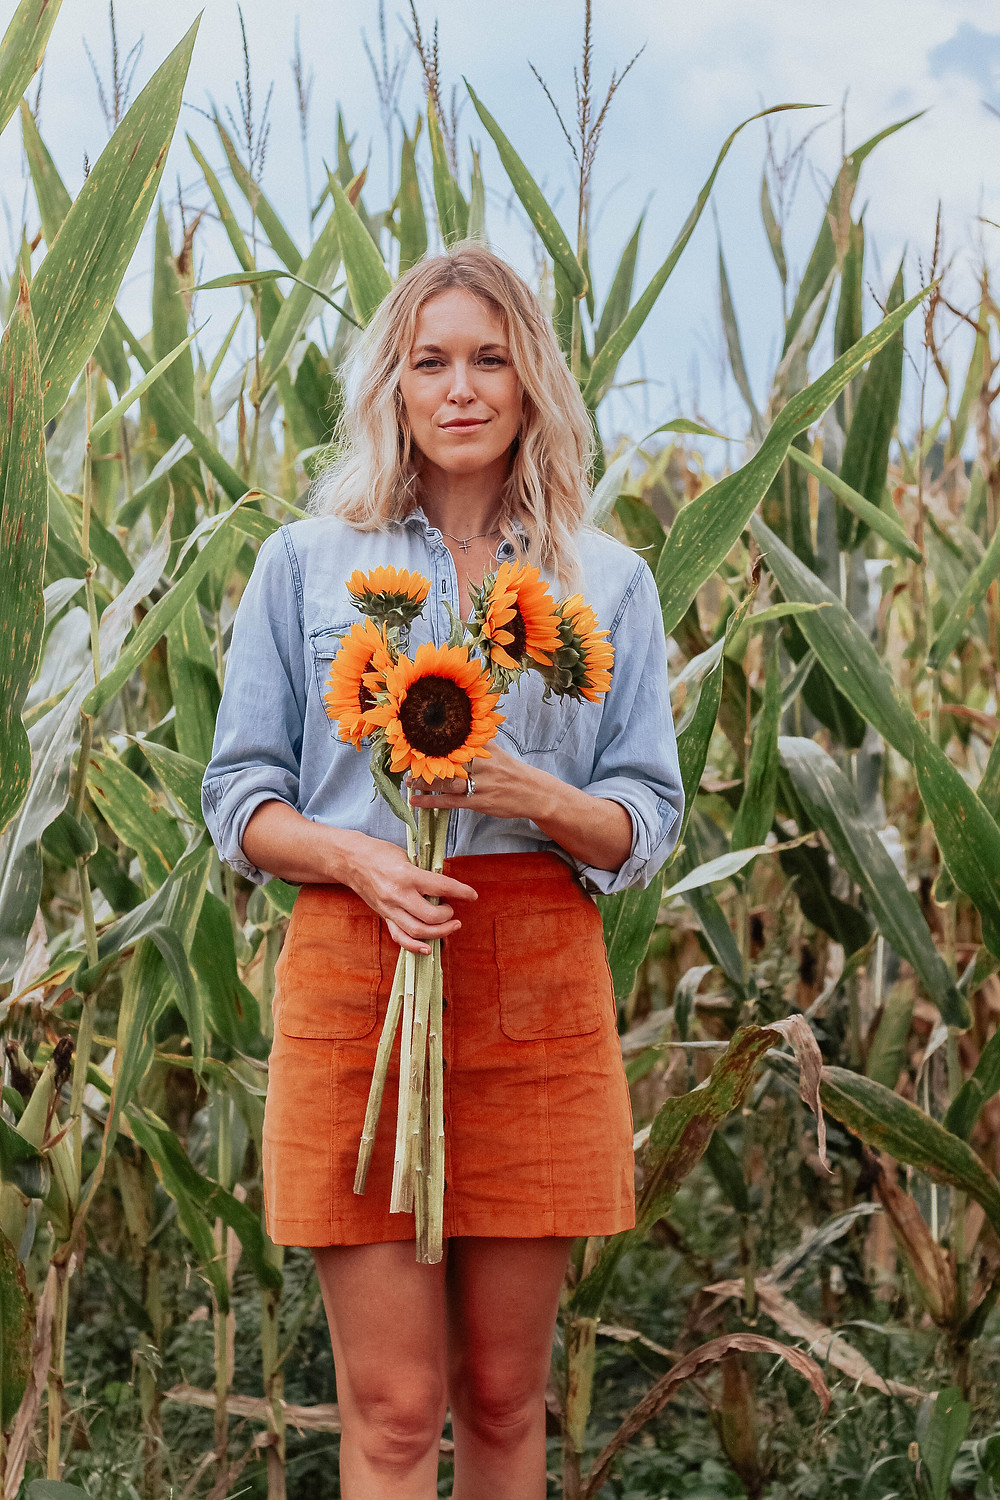 Brooke (The Tony Townie) wearing chambray blouse and corduroy skirt holds sunflowers.